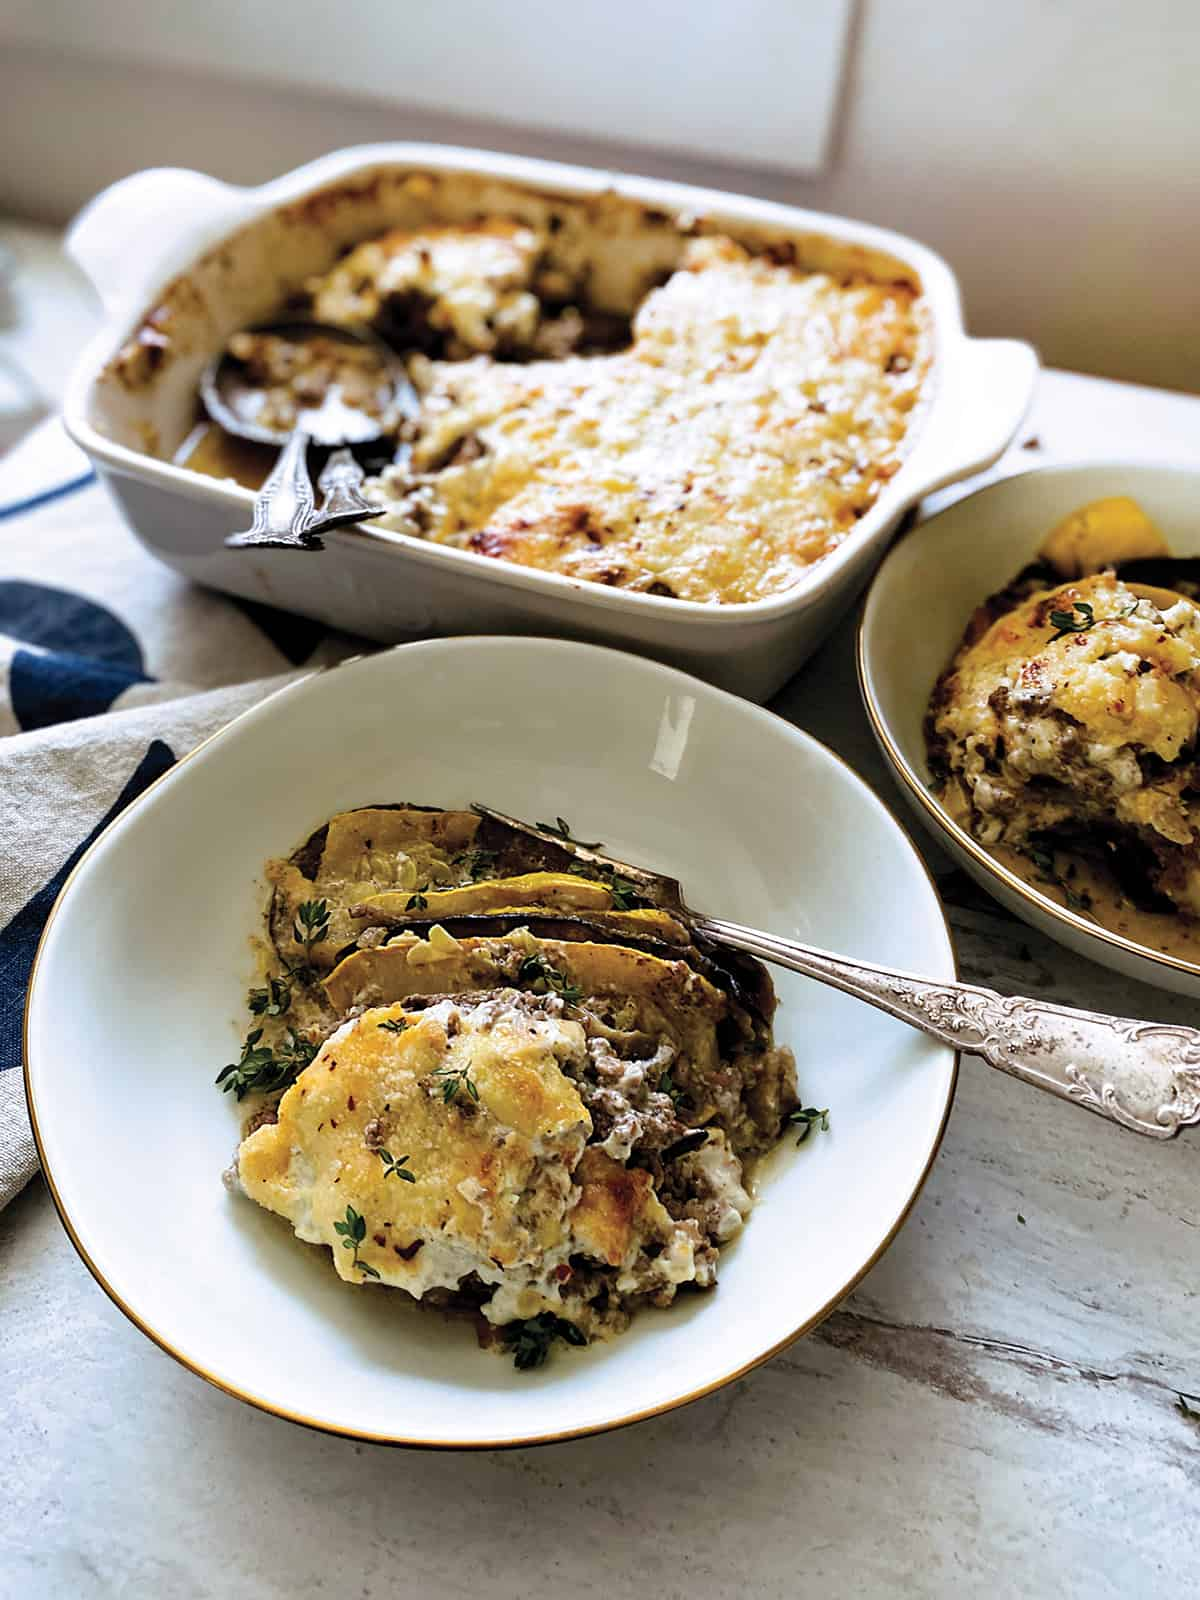 A pan with keto moussaka and two serving utensils, a plate with one piece and a fork and partial view of another plate with moussaka.